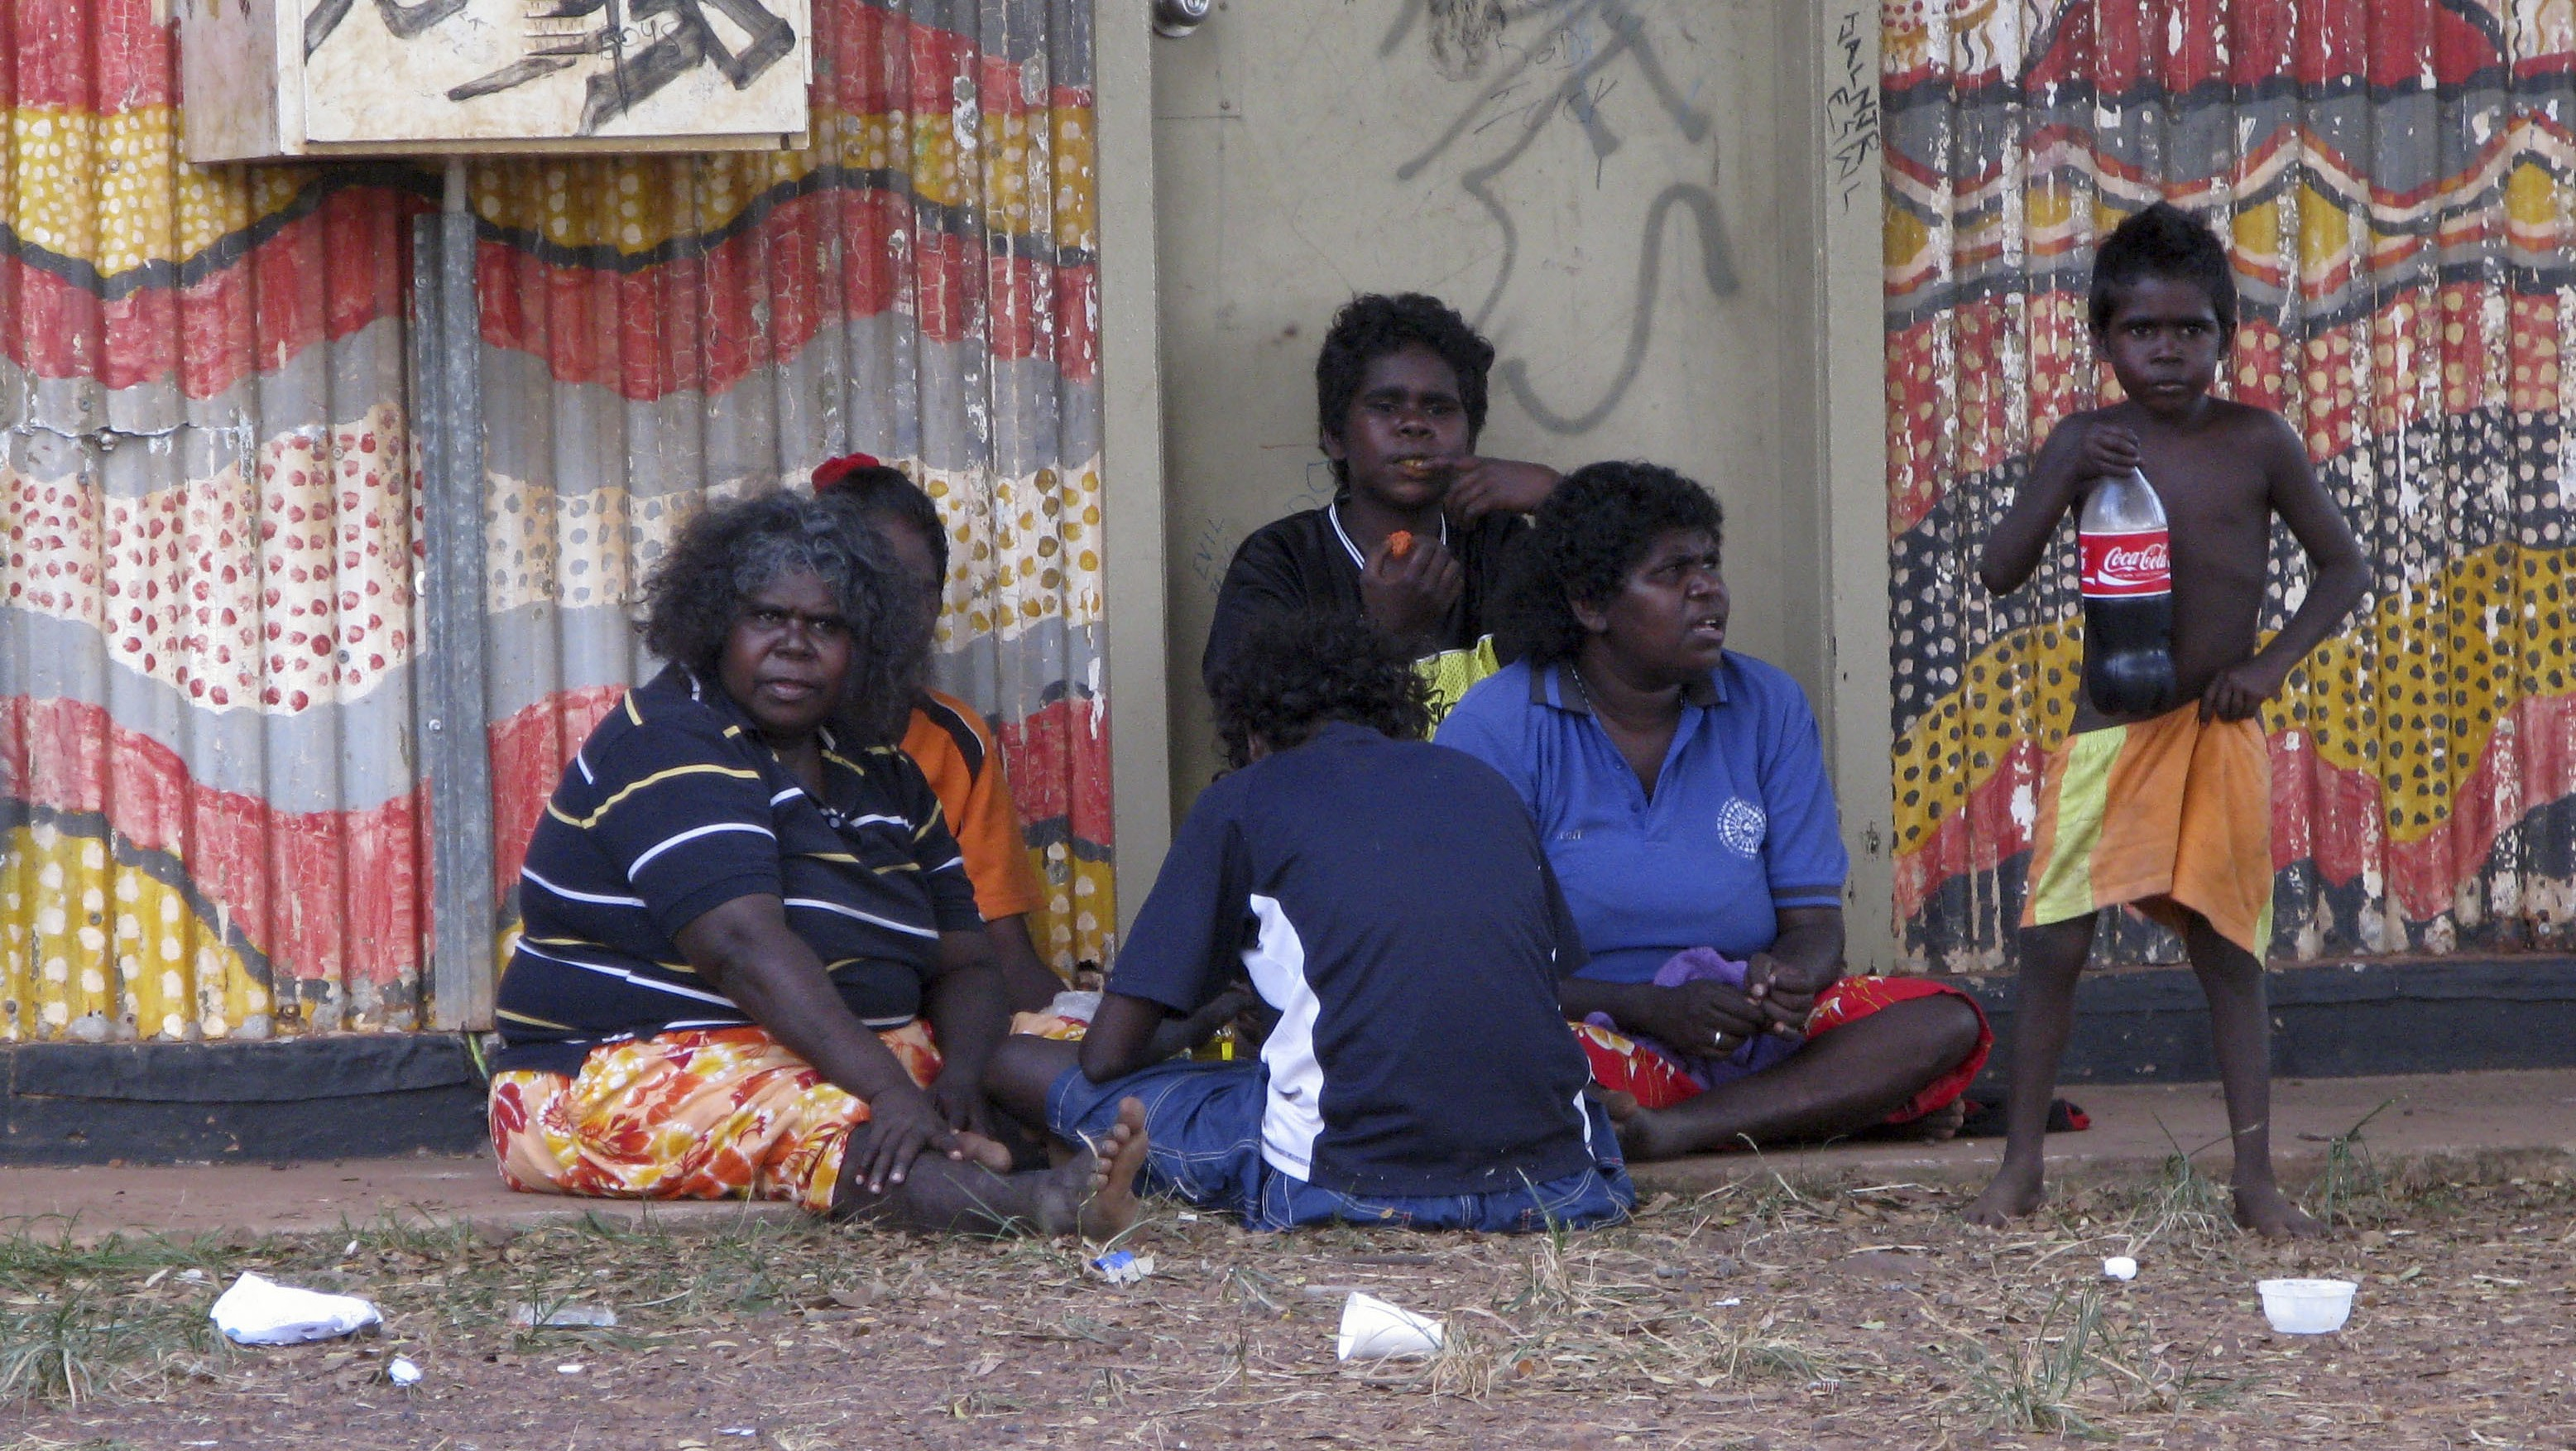 Australia Is Not Closing the Gap on Aboriginal Life Expectancy, as Incarceration Rates Rocket